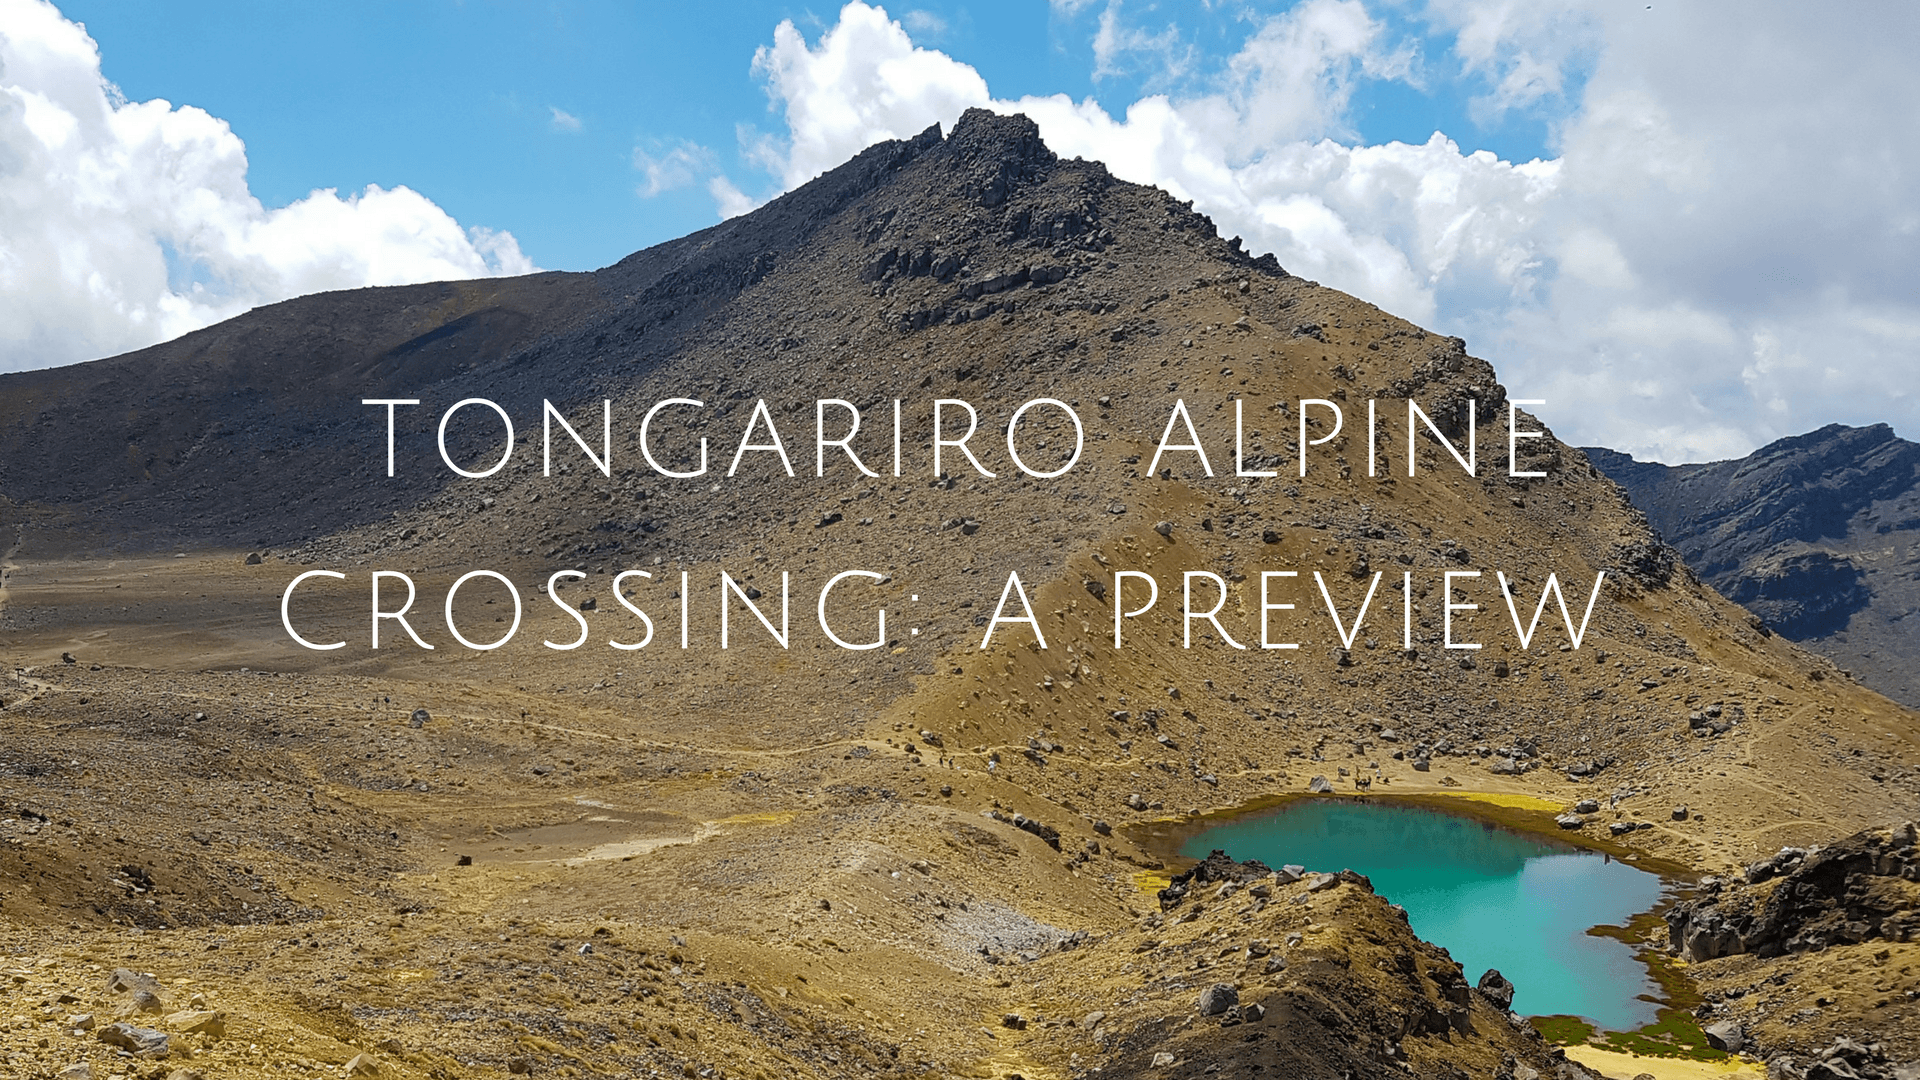 Tongariro Alpine Crossing: A Preview